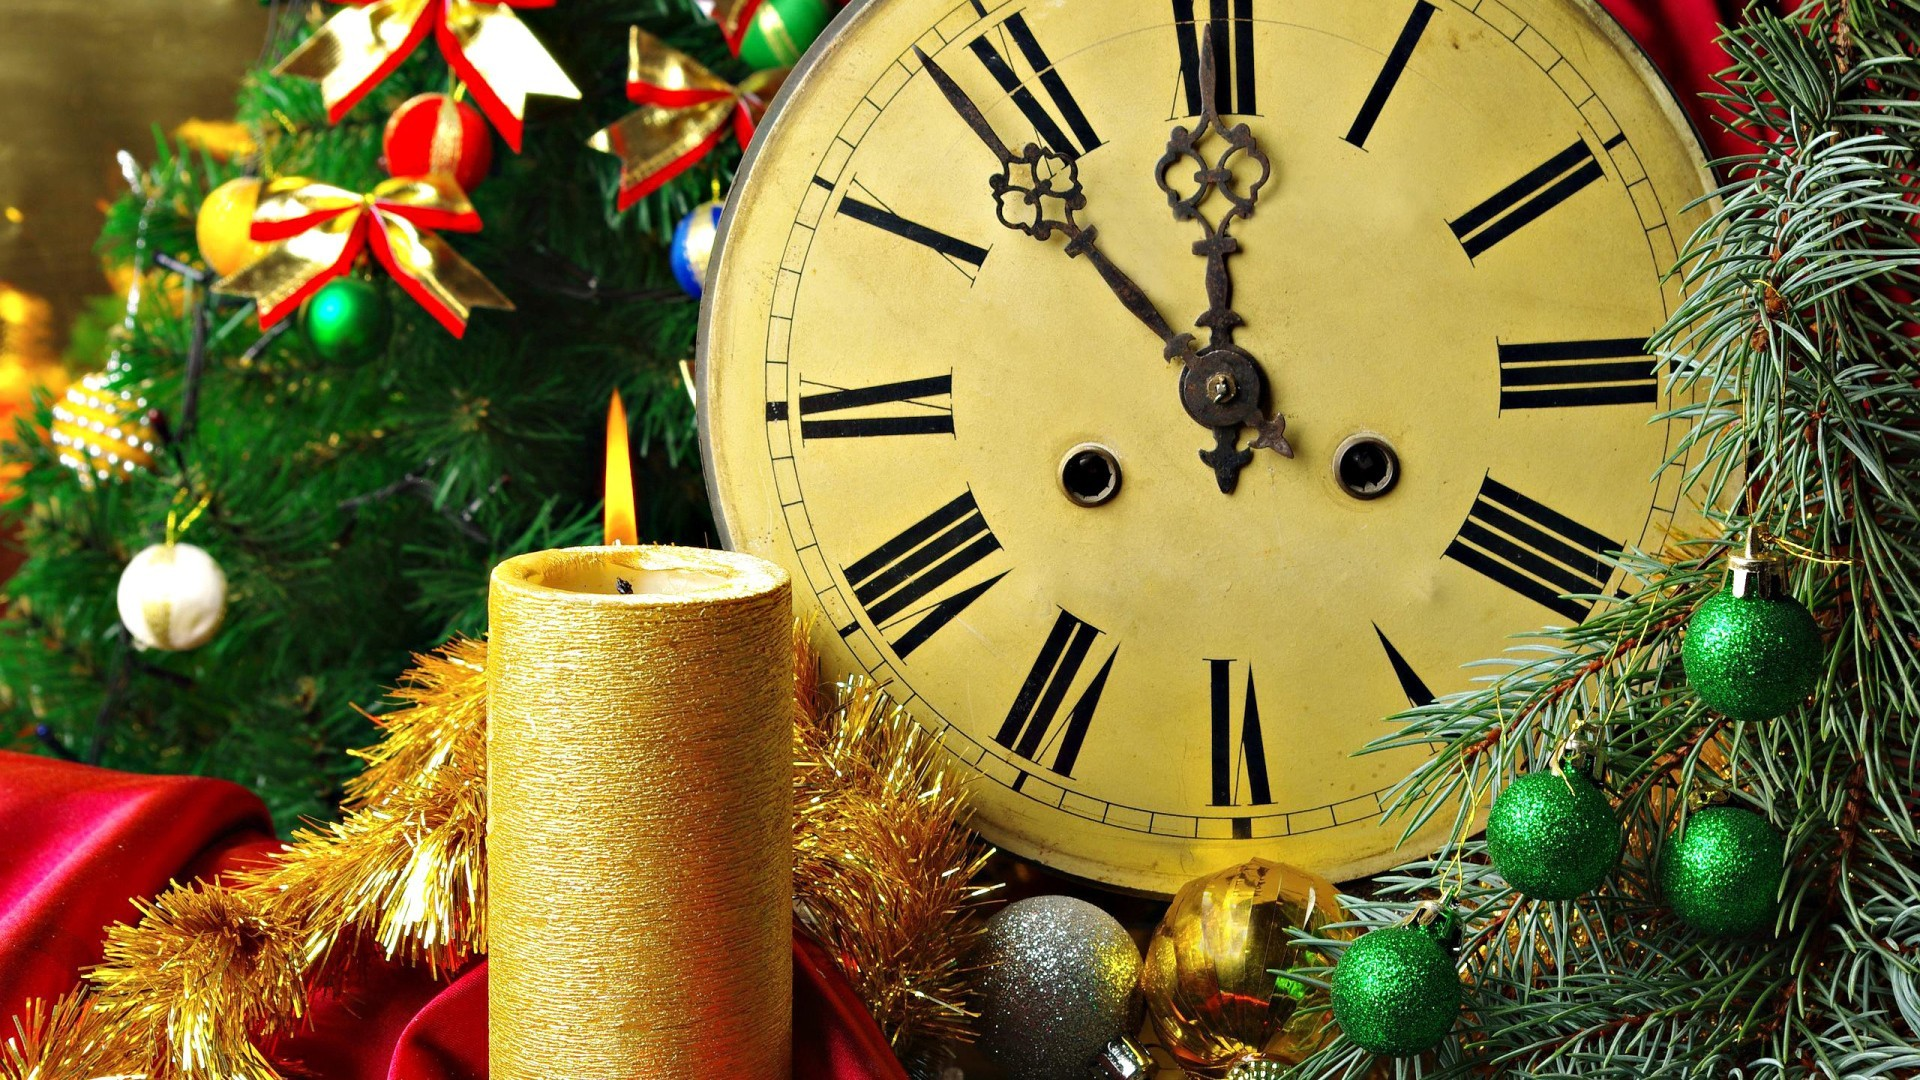 new year christmas celebration clock time decoration gold midnight bell eve shining winter thread gift watch round traditional ornate